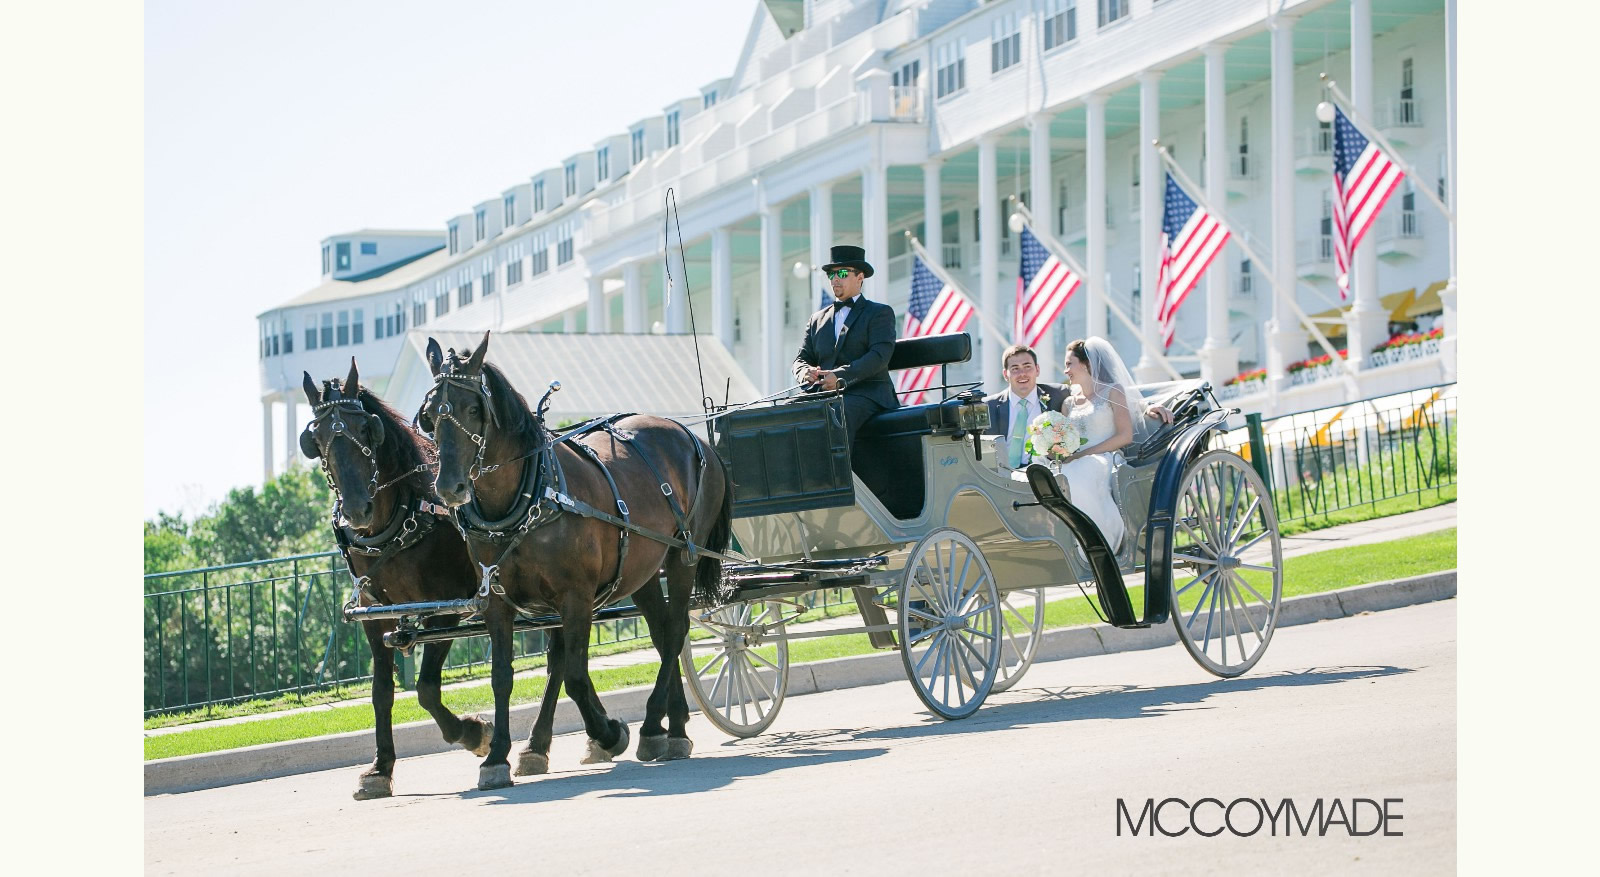 McCoyMade-FortheLoveofMackinac-6006copy